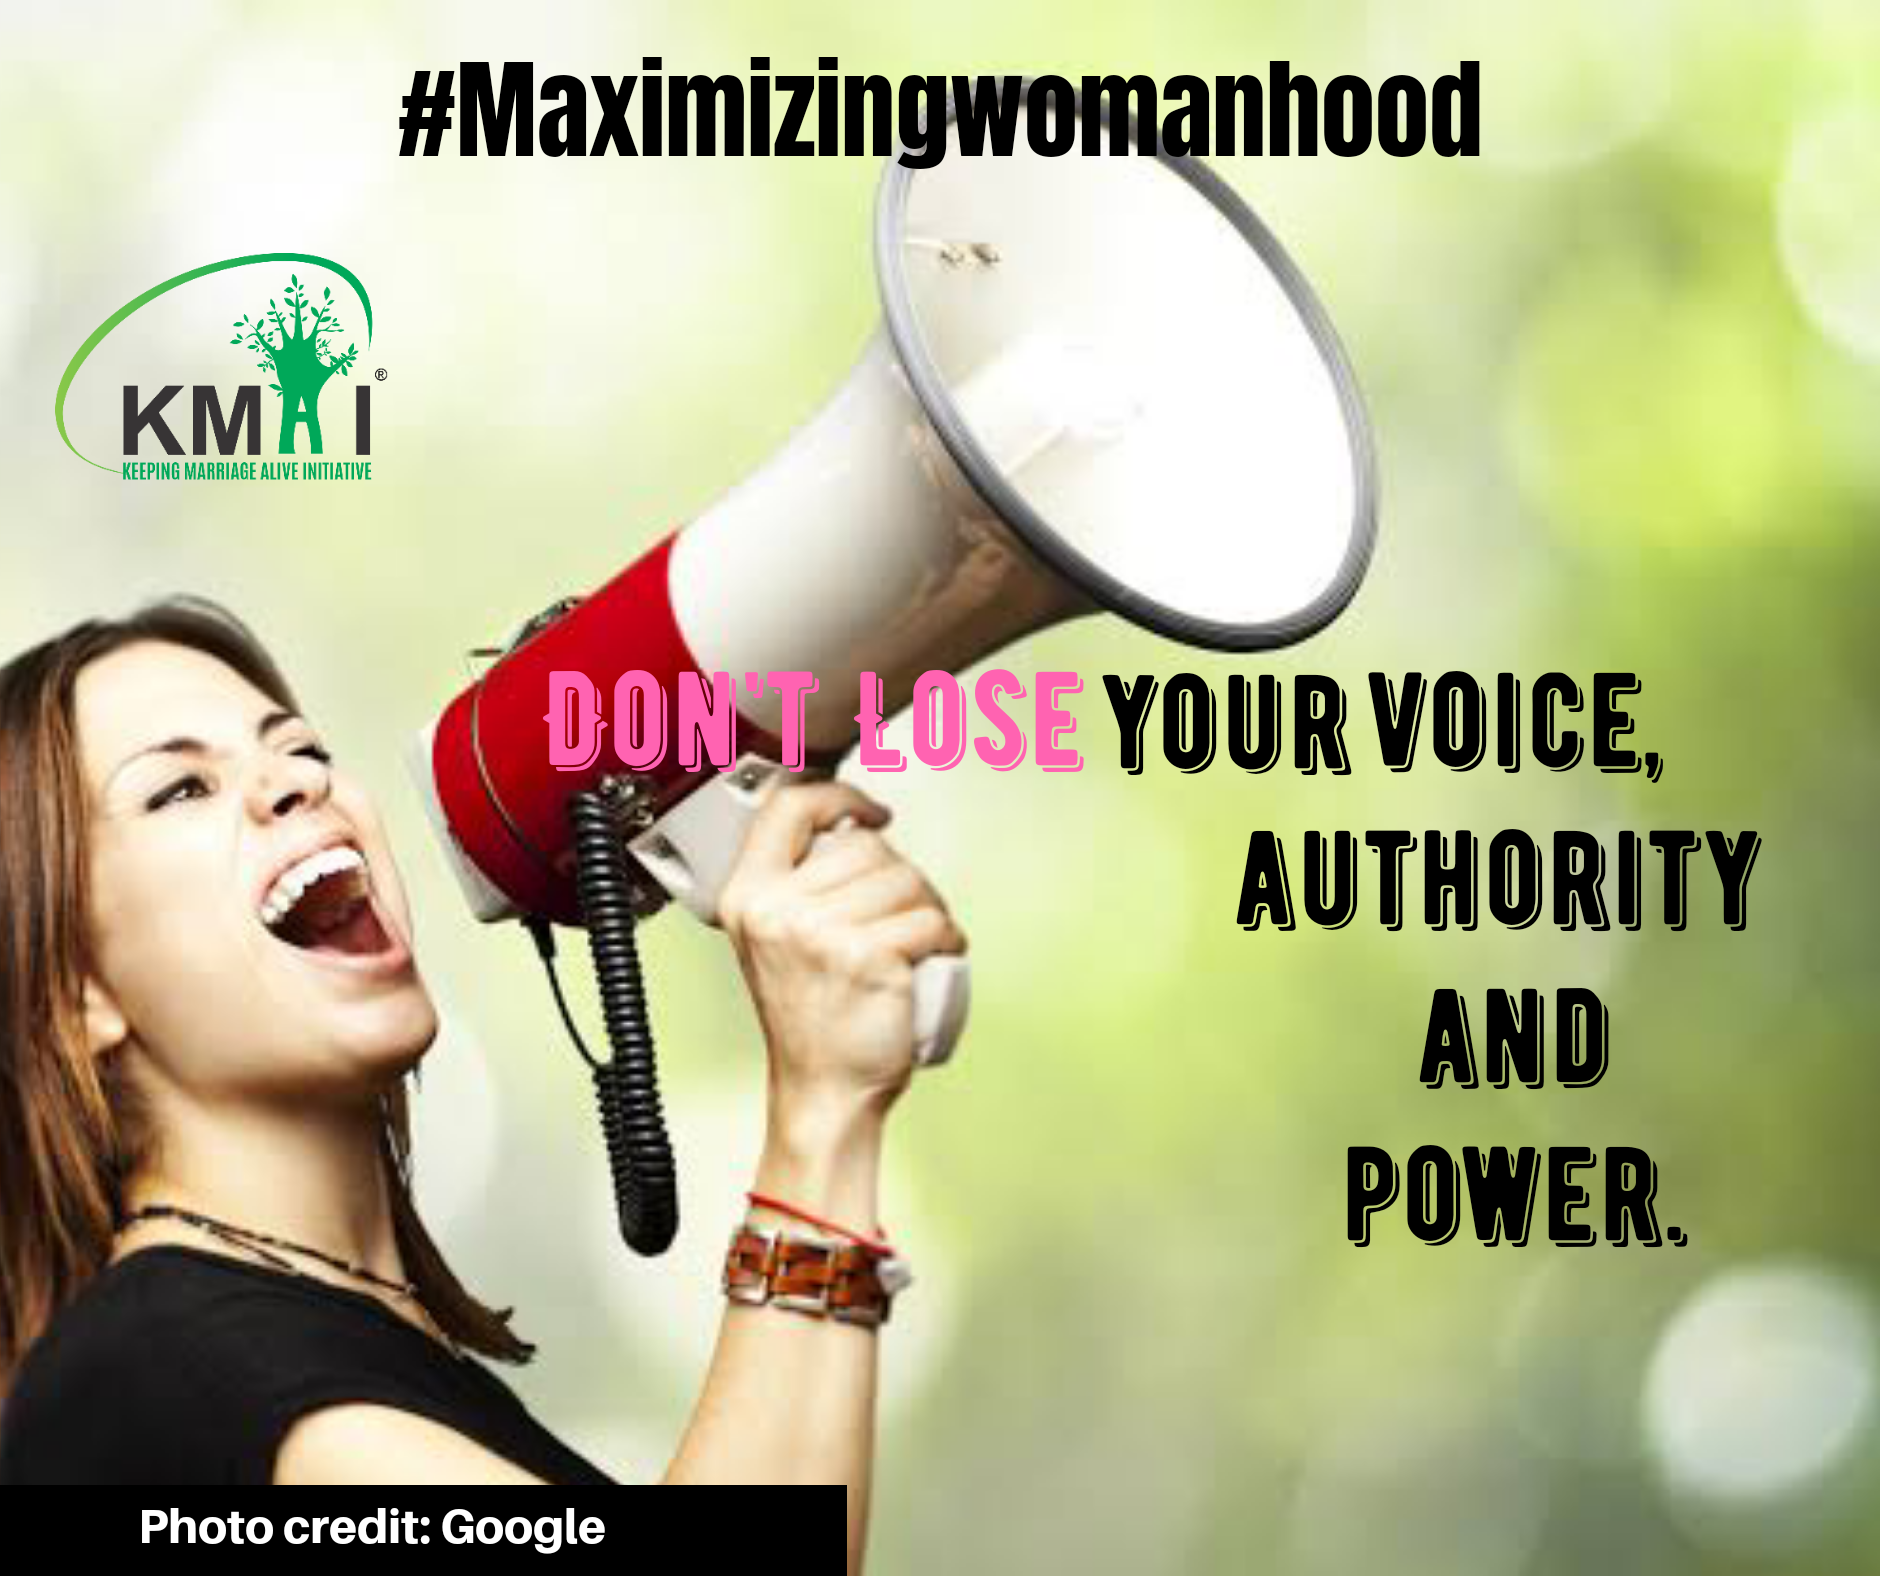 Don't lose your voice, authority and power